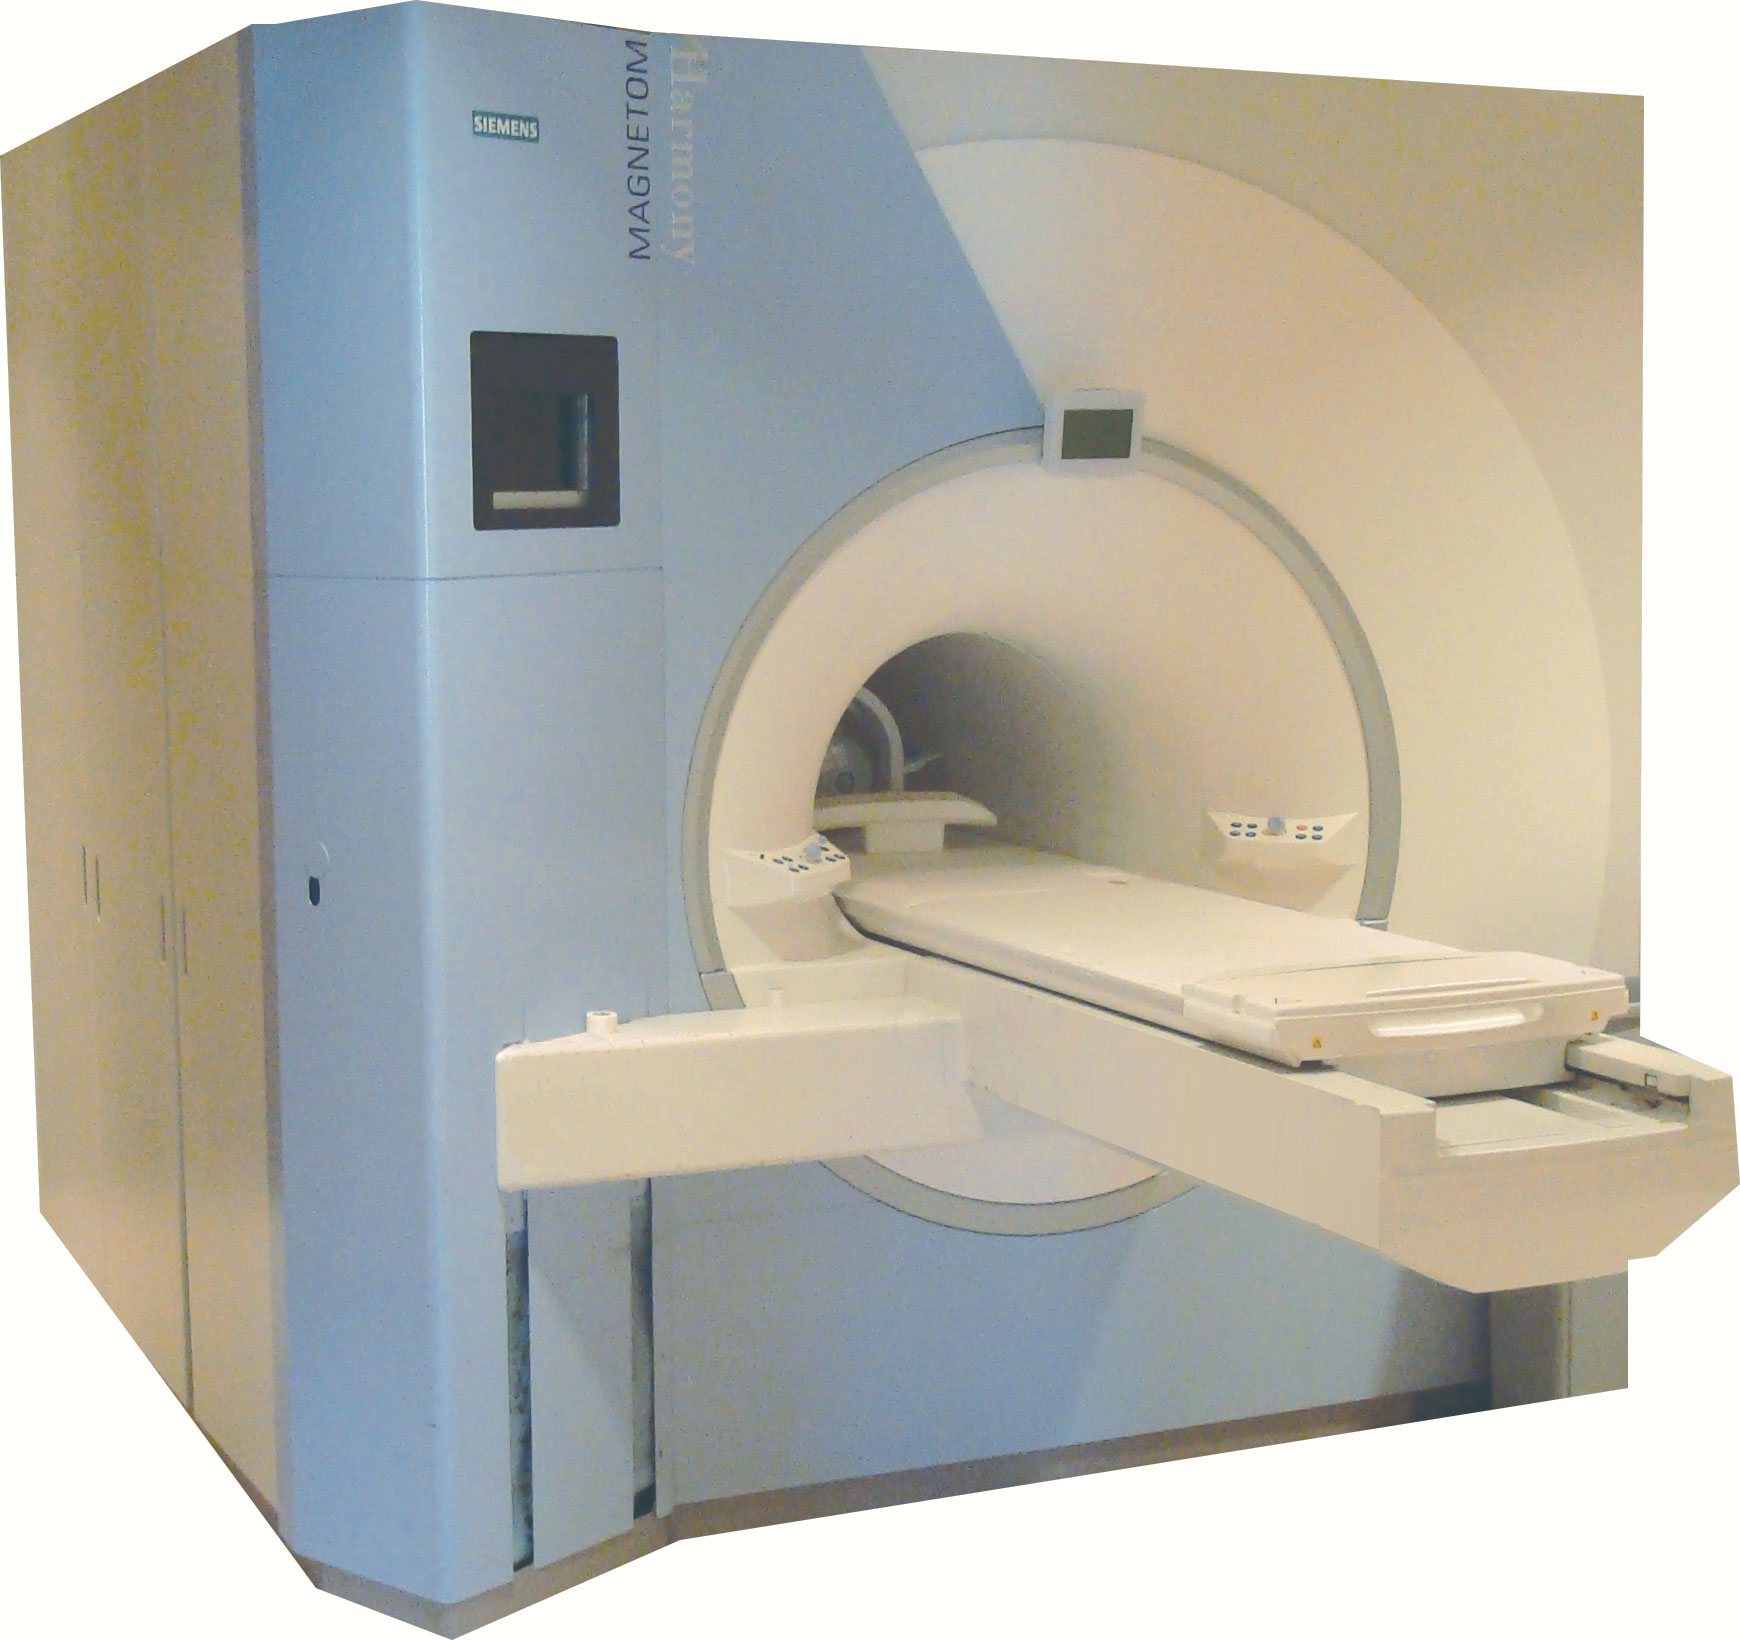 largest mri machine